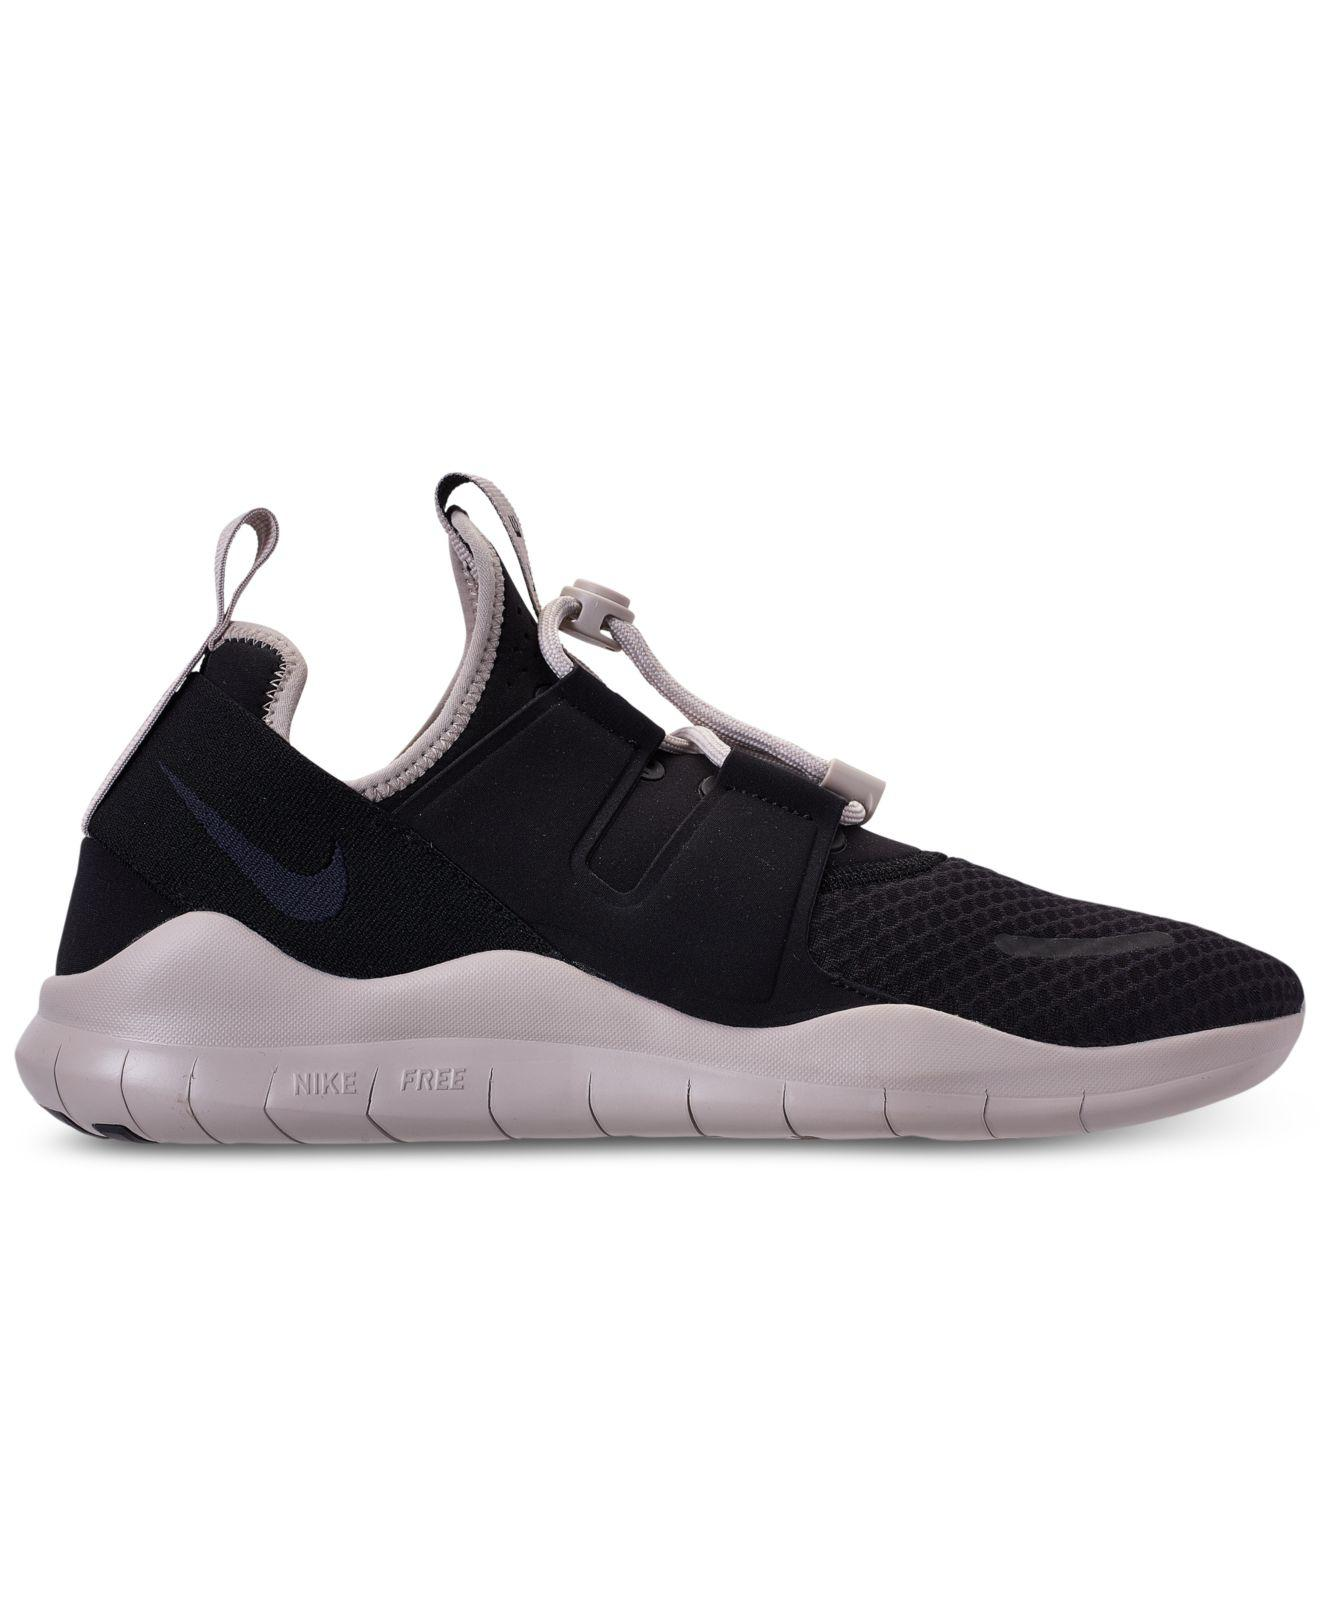 84bfd14b3338 ... shop lyst nike free rn commuter 2018 running sneakers from finish line  in black for men